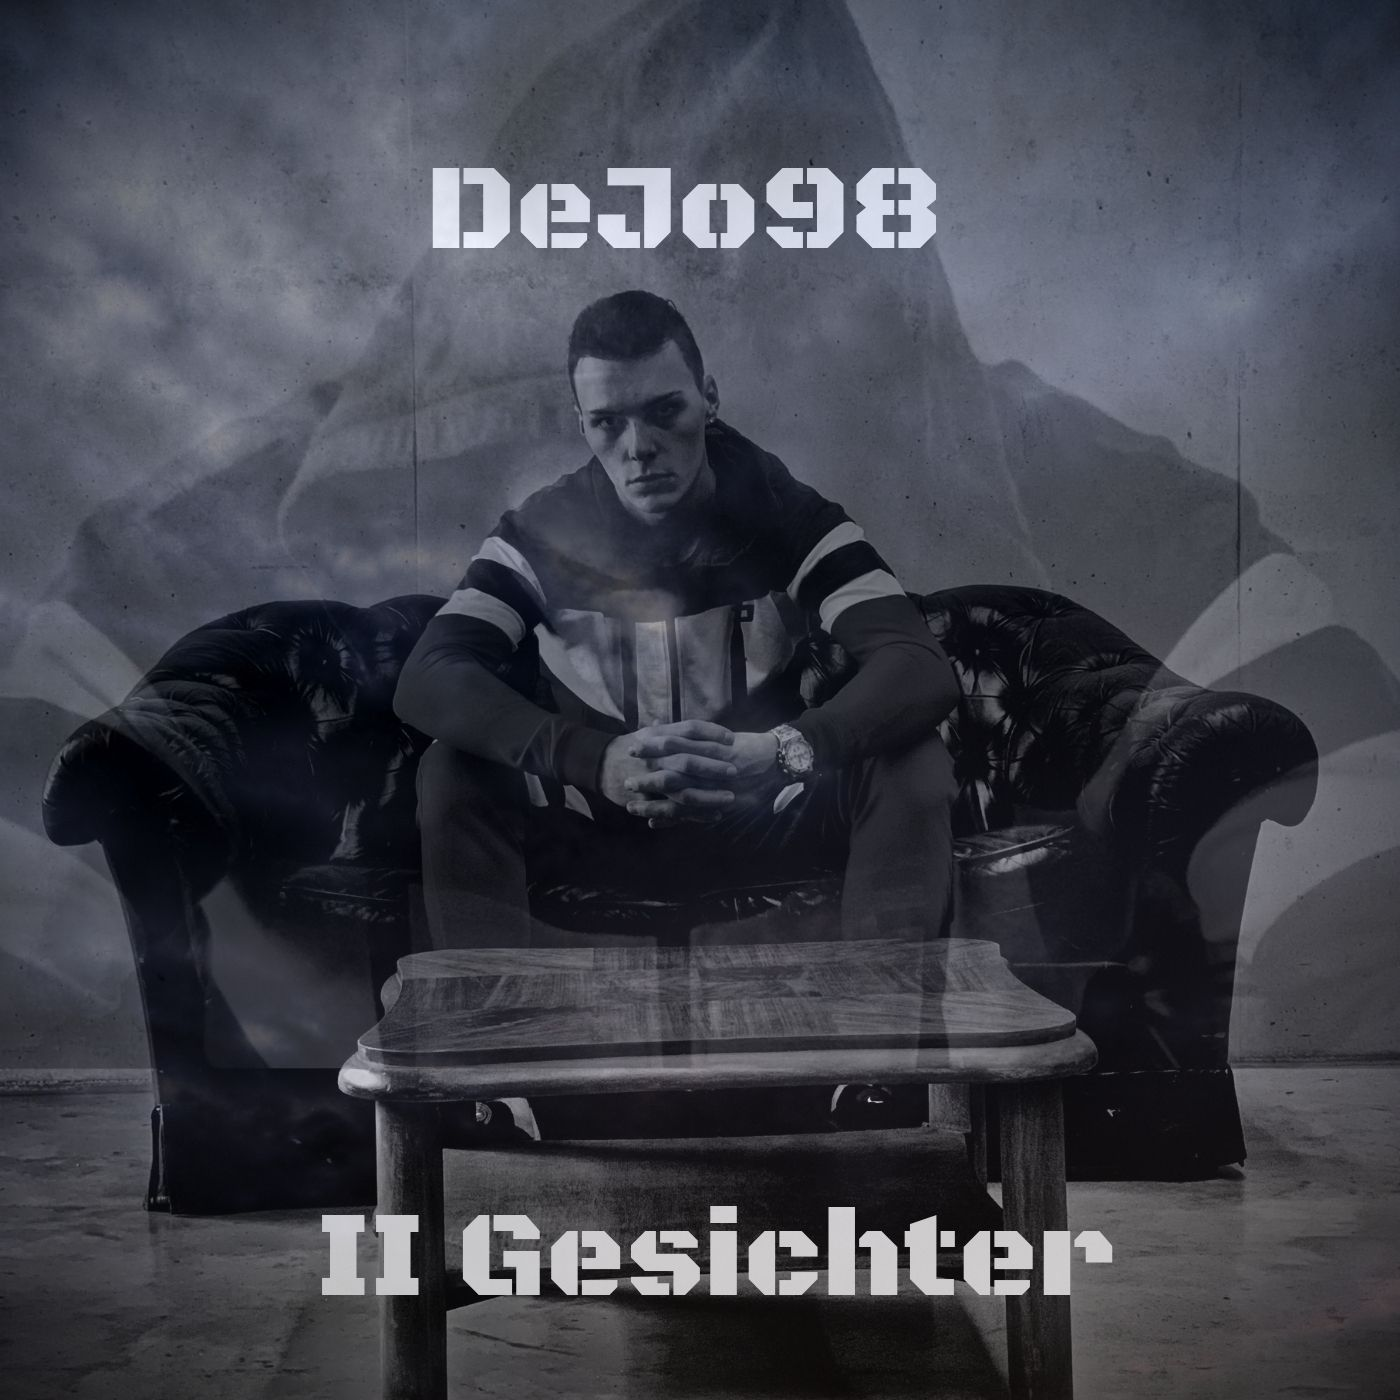 Upcoming: DeJo98 - 2 Gesichter (Album)